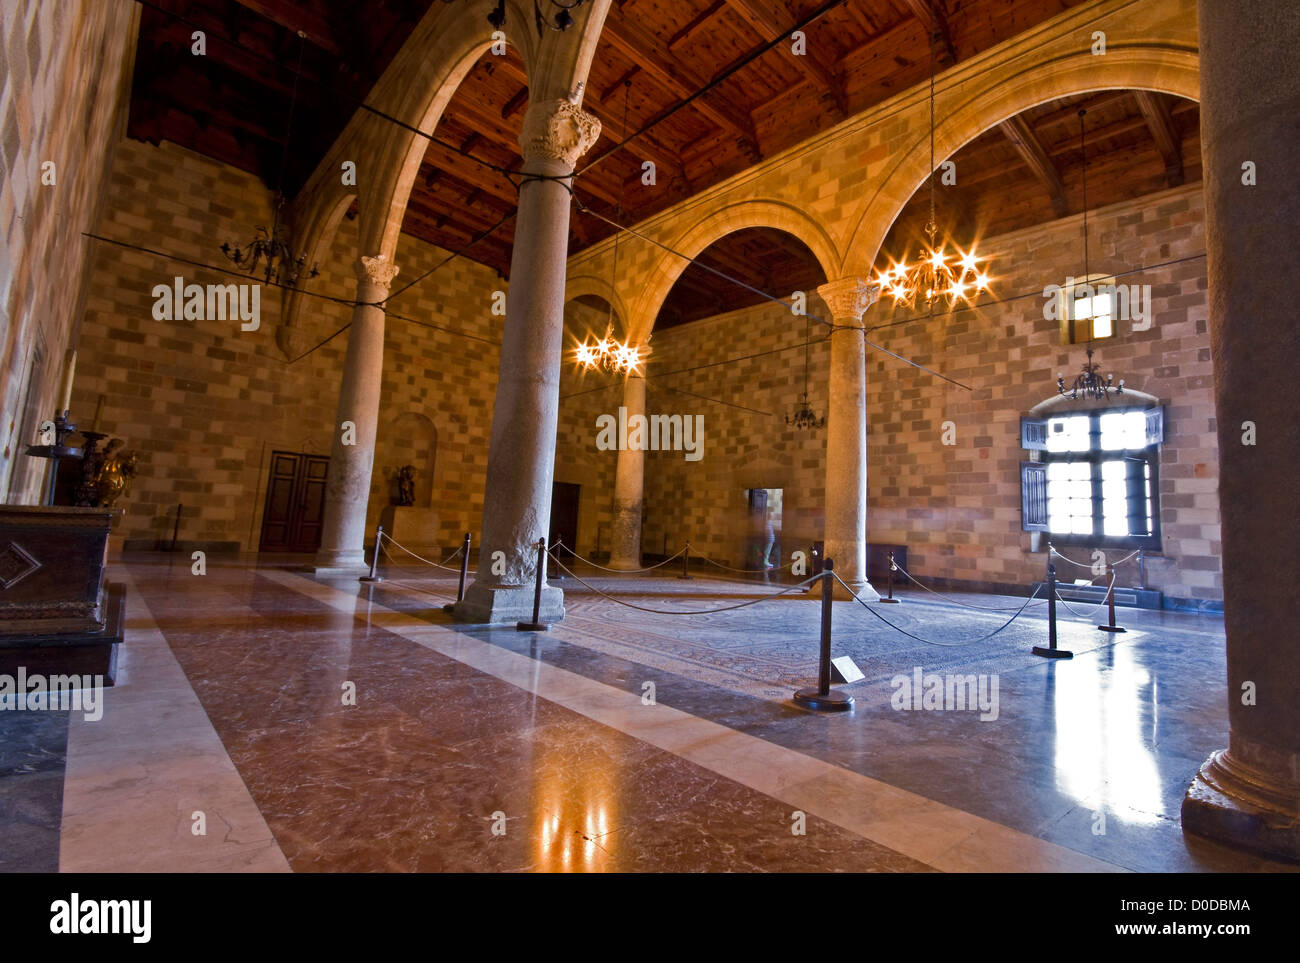 Room inside the palace of the Knights at Rhodes island, Greece - Stock Image